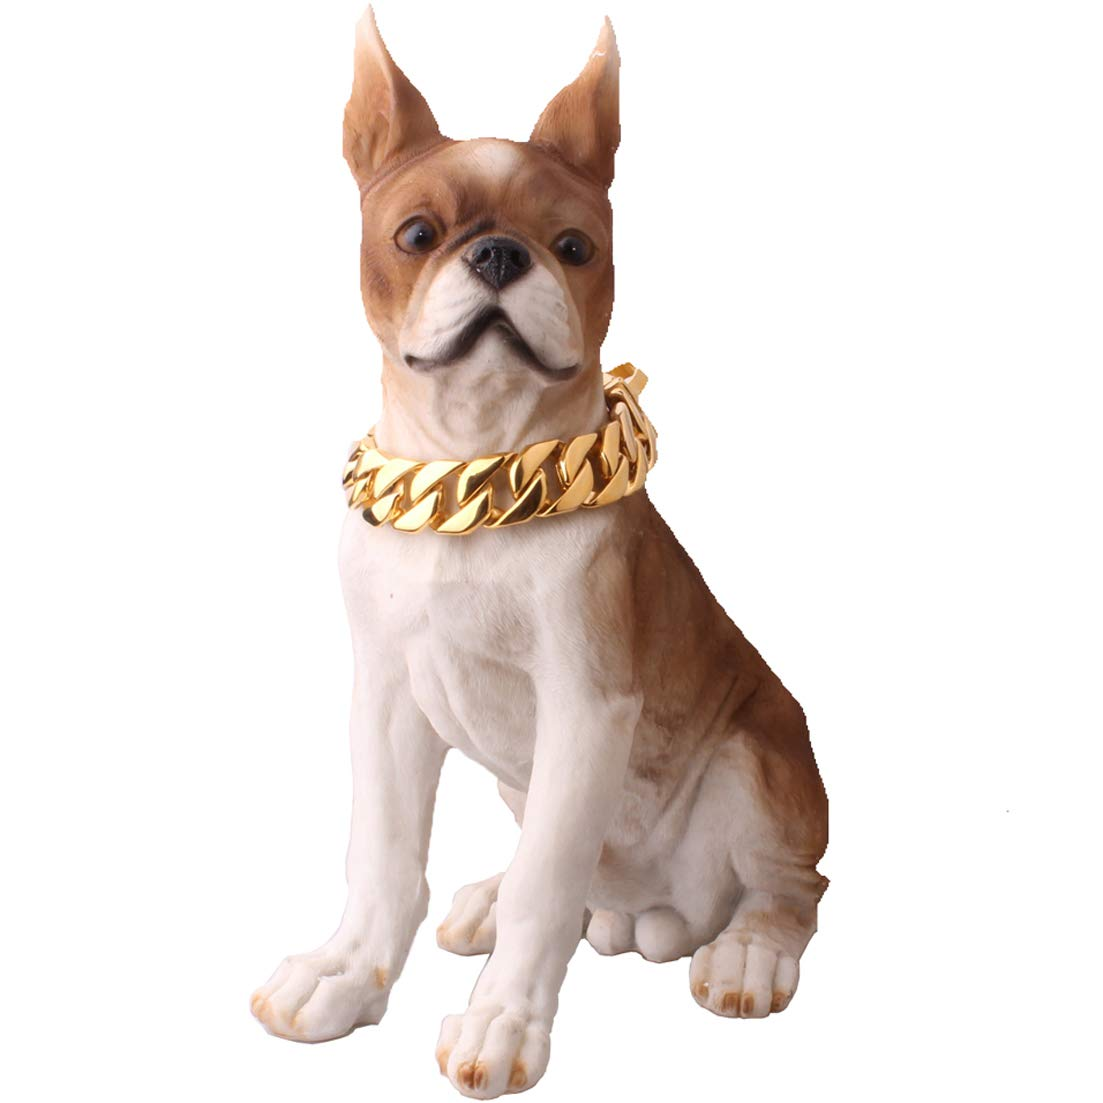 FML PET Premium 316L Stainless Steel Dog Training Choke Collar, 30mm Wide Cuban Chain Necklace for Pit Bull Mastiff Bulldog Big Breeds, Up to 680 lbs Dogs - Gold